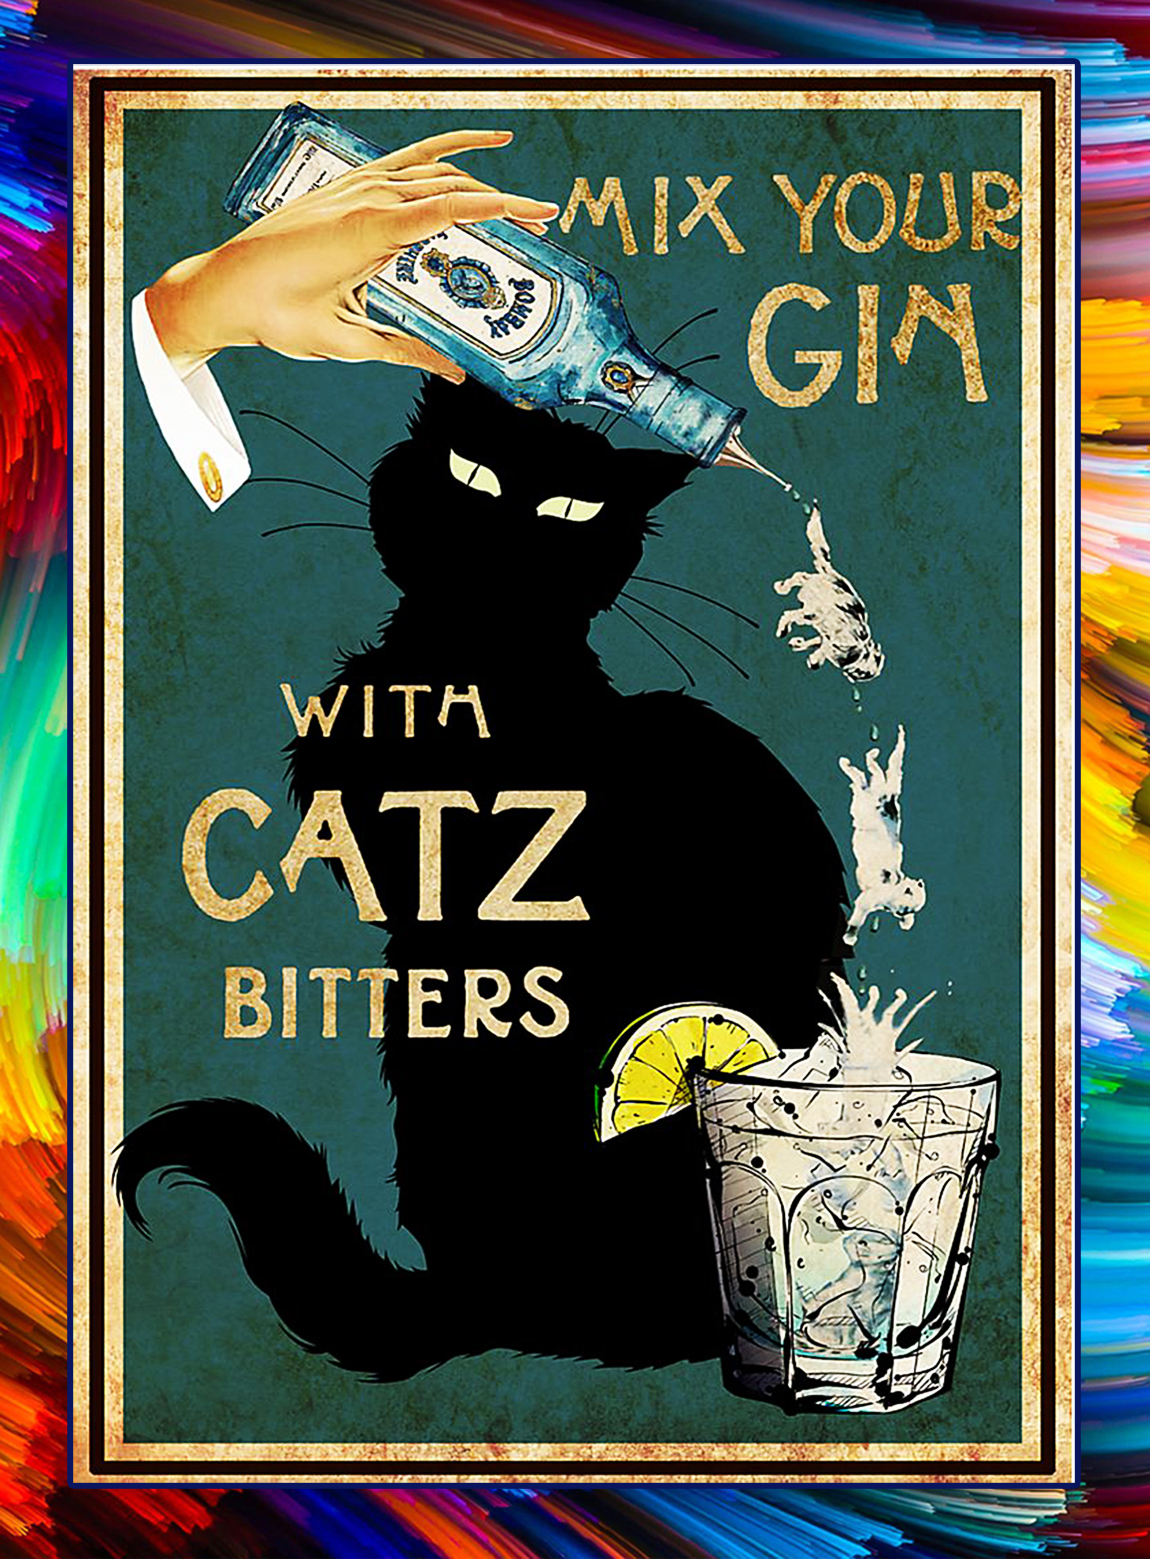 Cat Mix your gin with catz bitter poster - A2